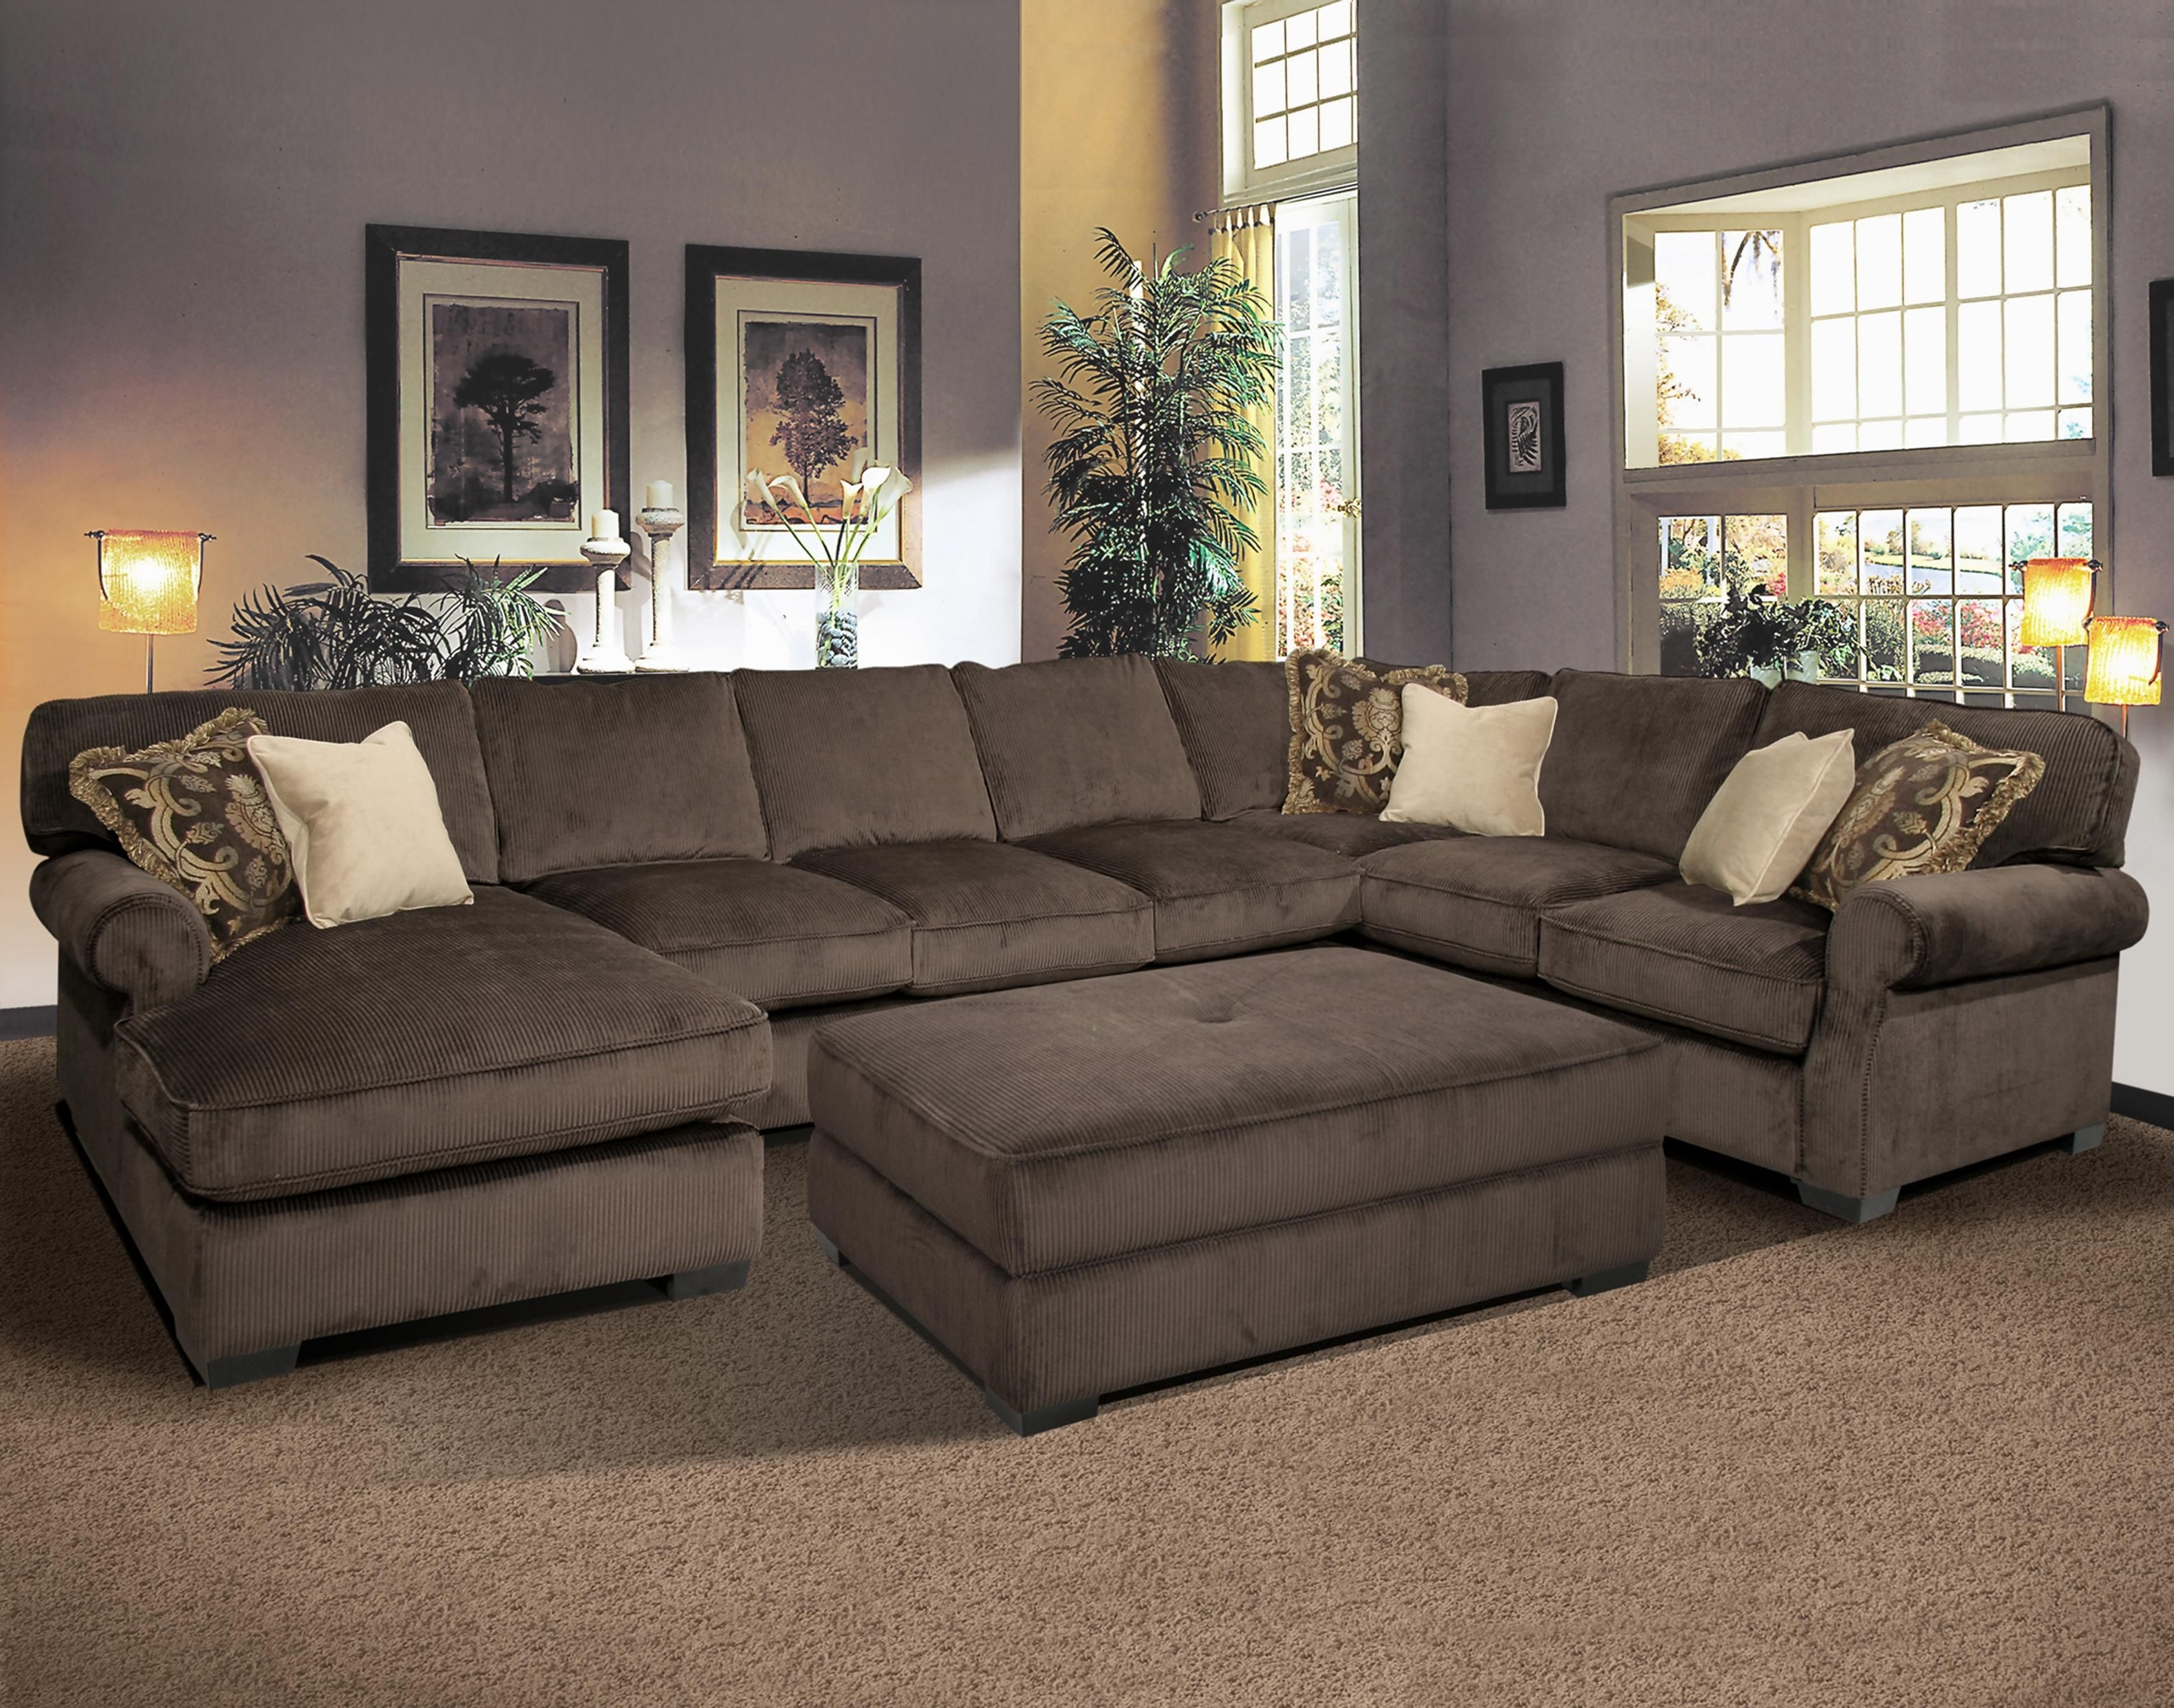 Ventura County Sectional Sofas With 2017 Massive Sectional Featuring An Extra Deep Seat With Crowned (Gallery 14 of 15)